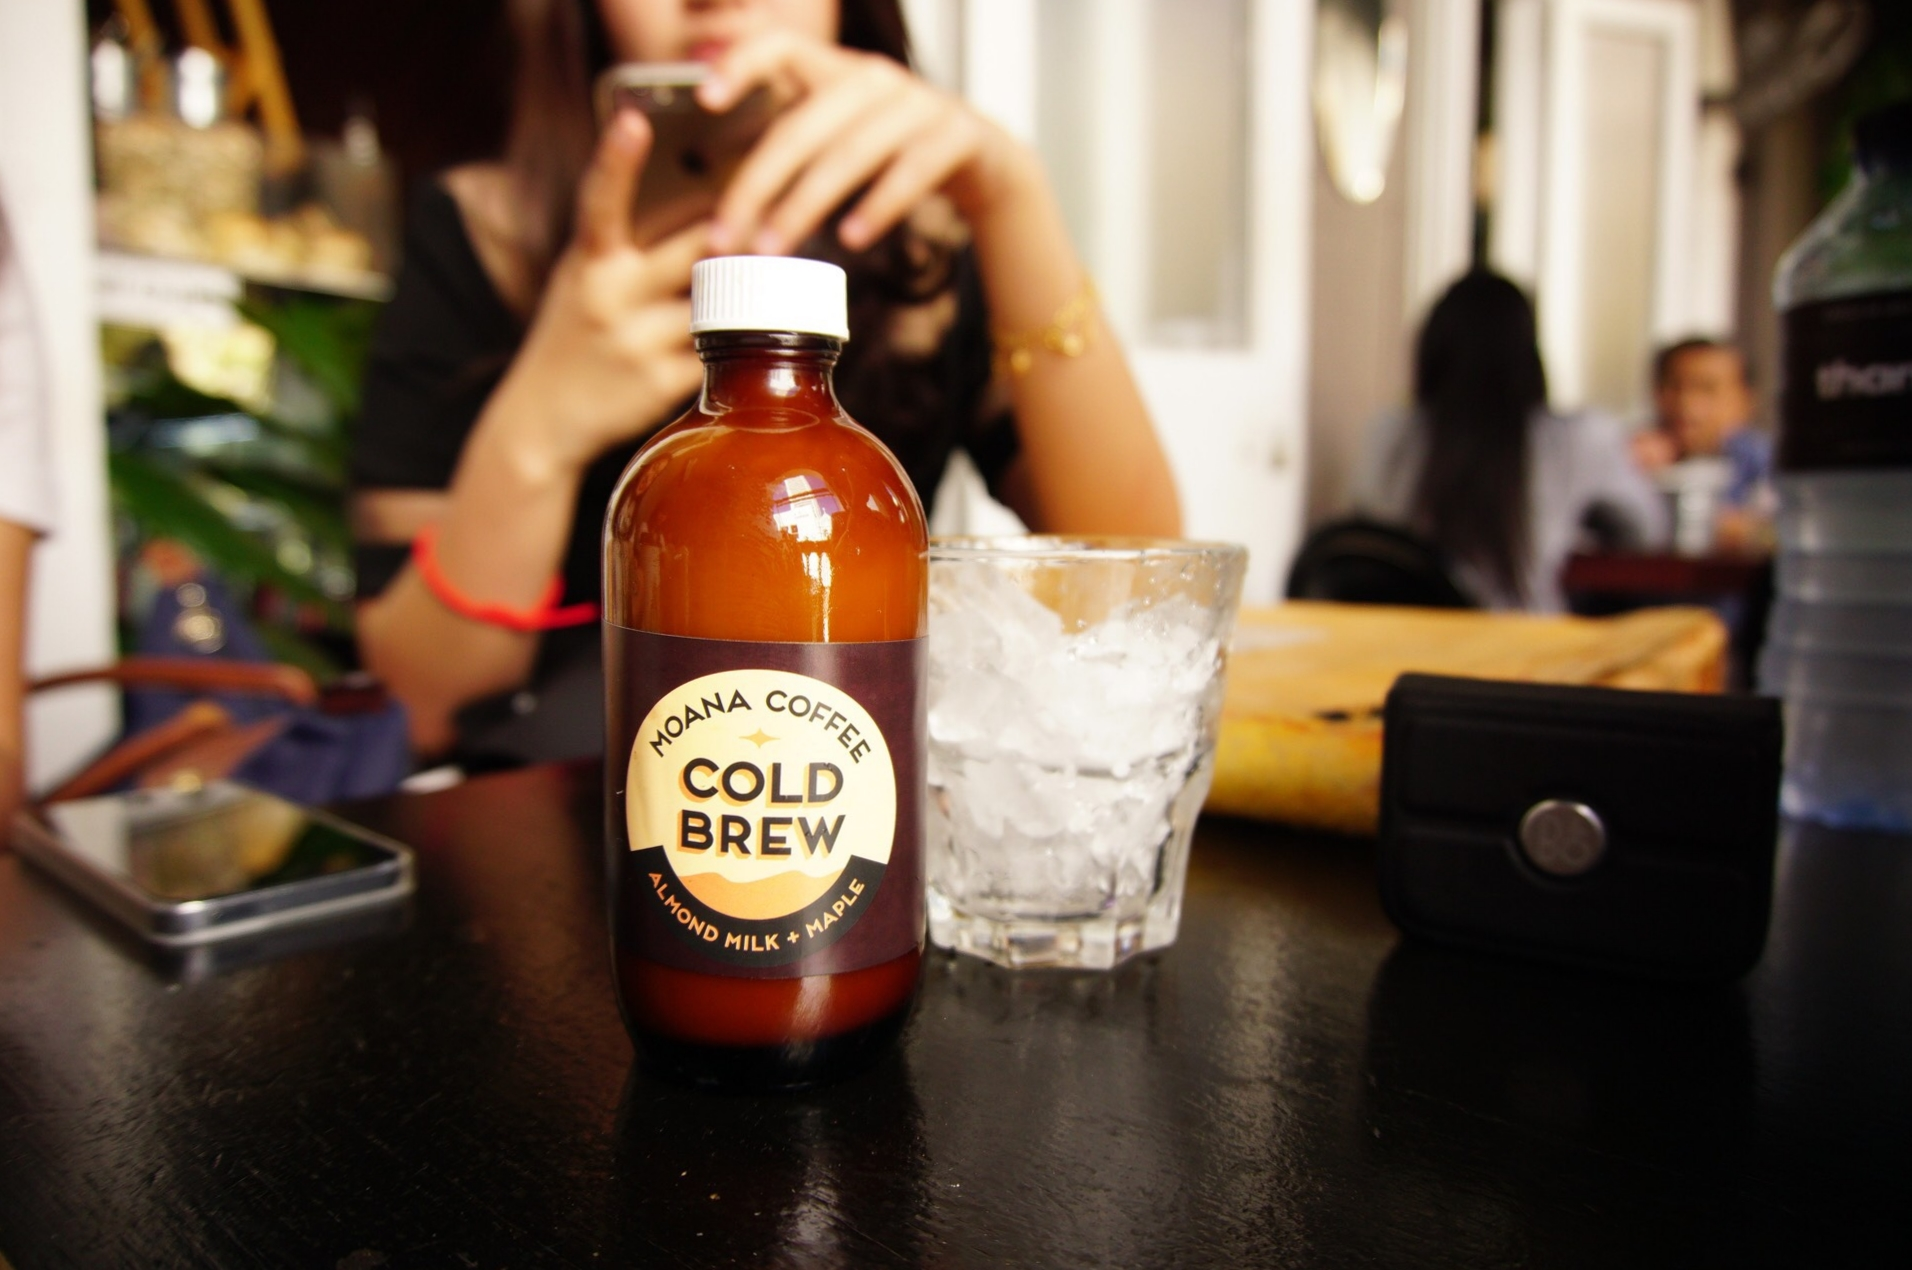 Moana Coffee Cold Brew